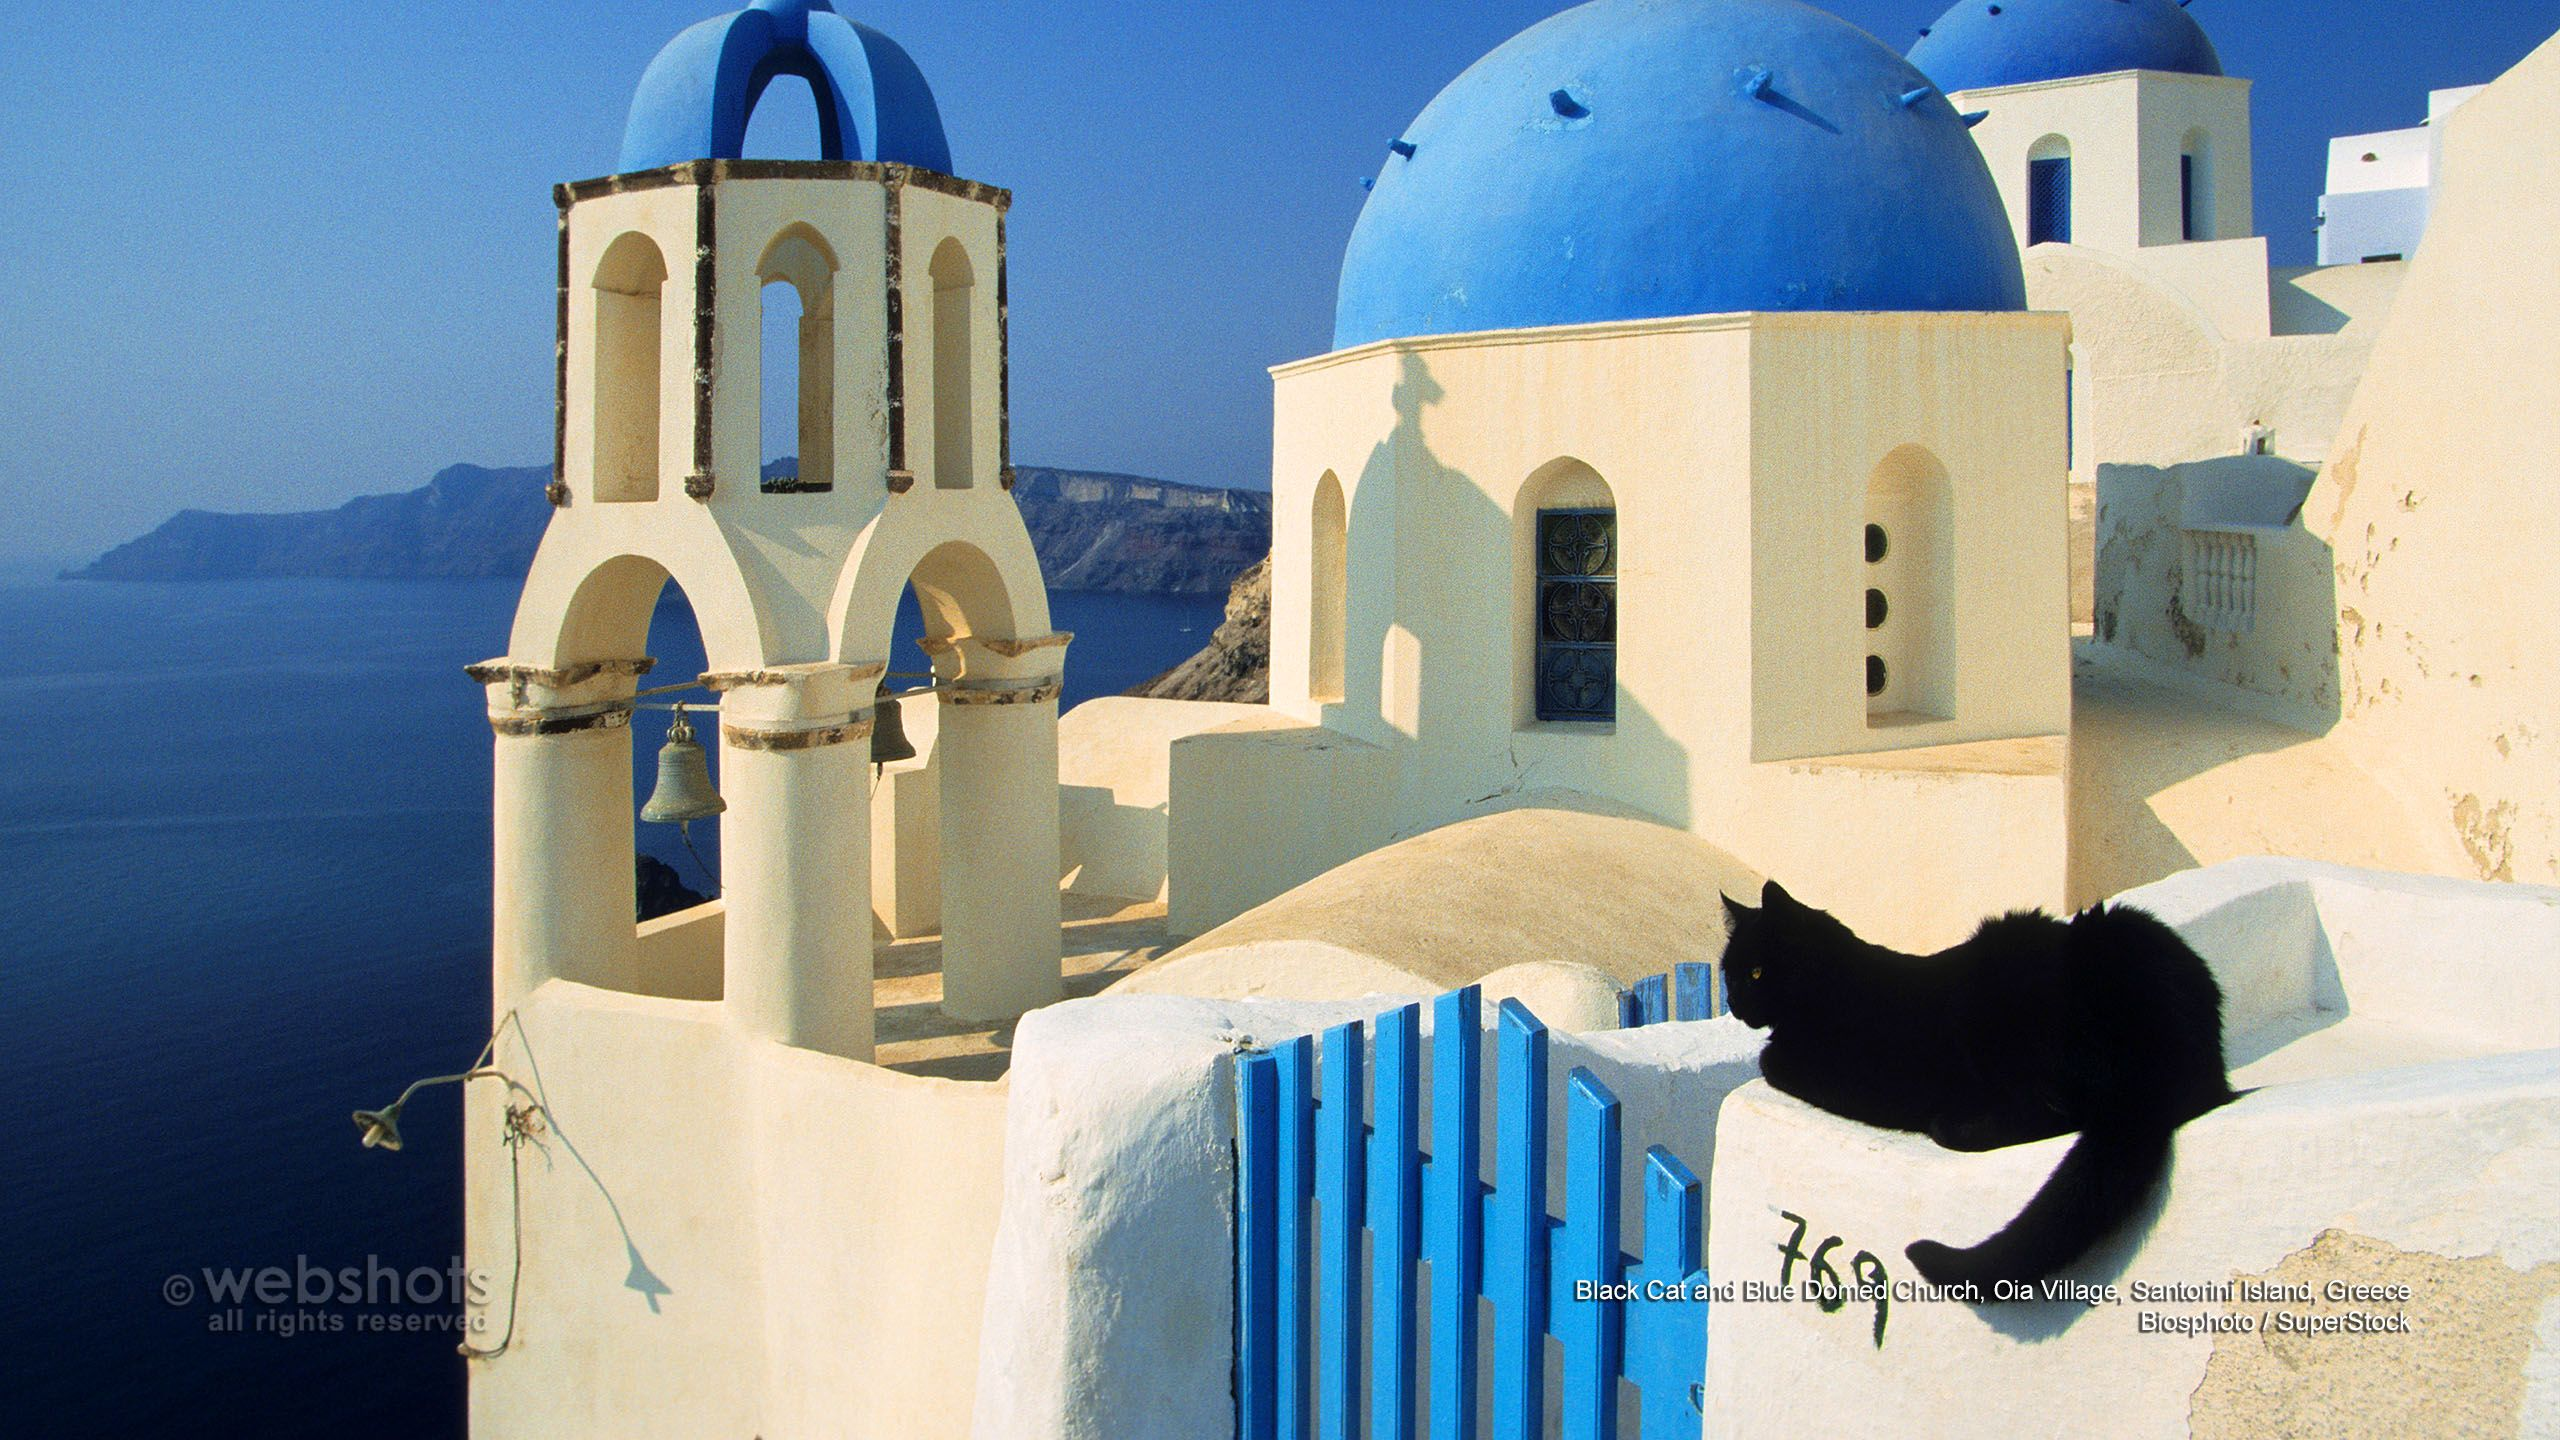 Black Cat and Blue Domed Church Oia Village Santorini Island 2560x1440